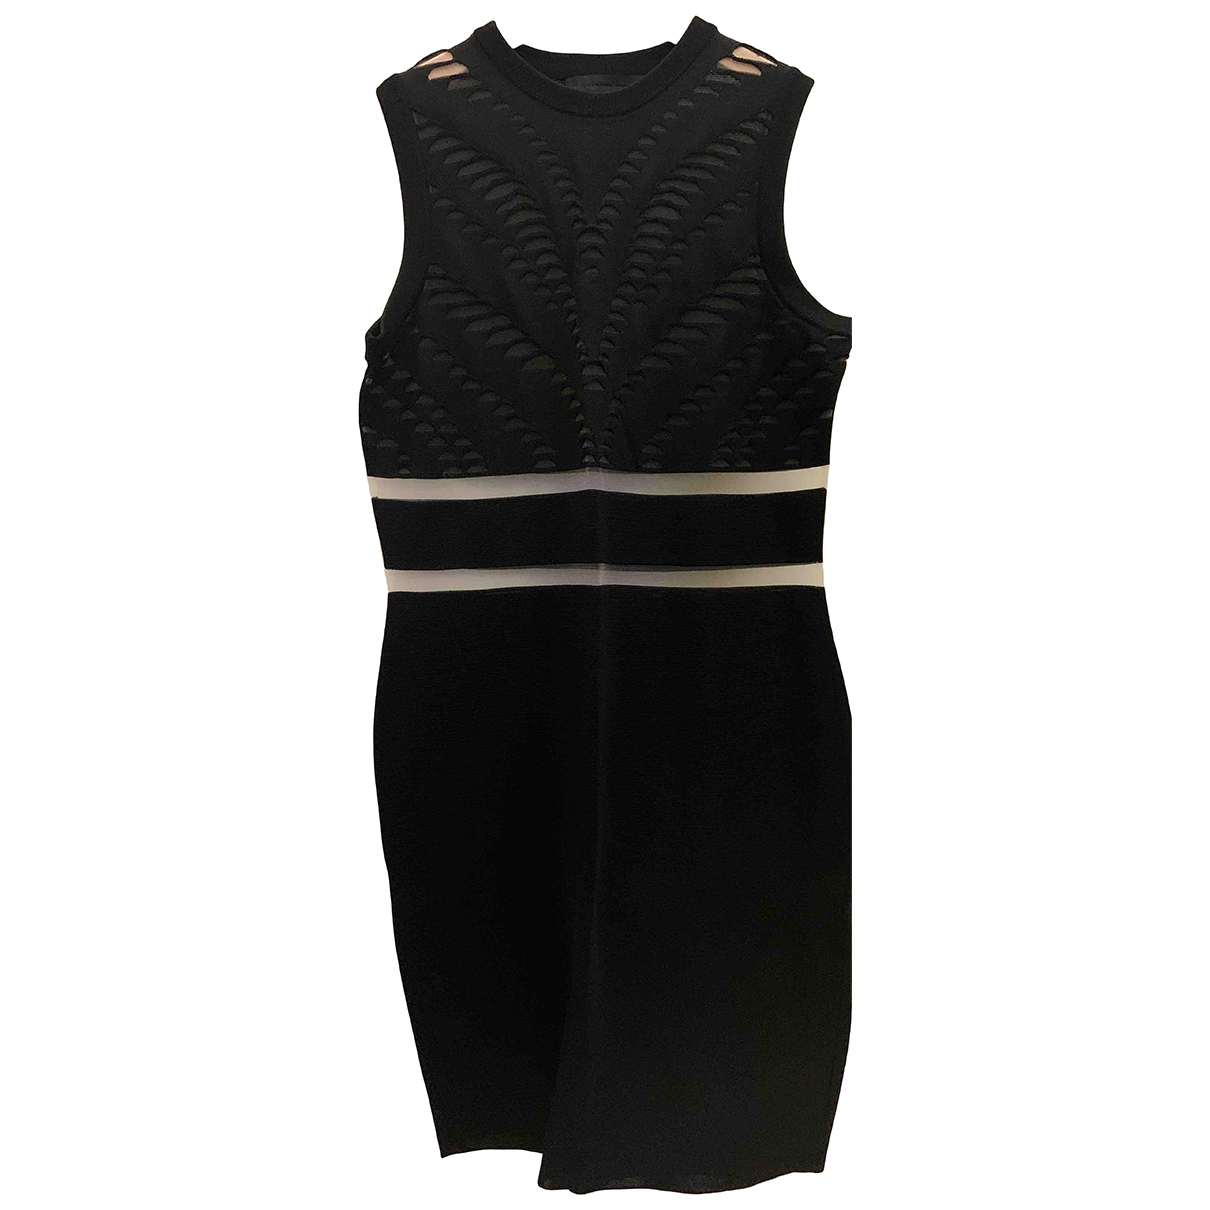 Alexander Wang N Black dress for Women S International